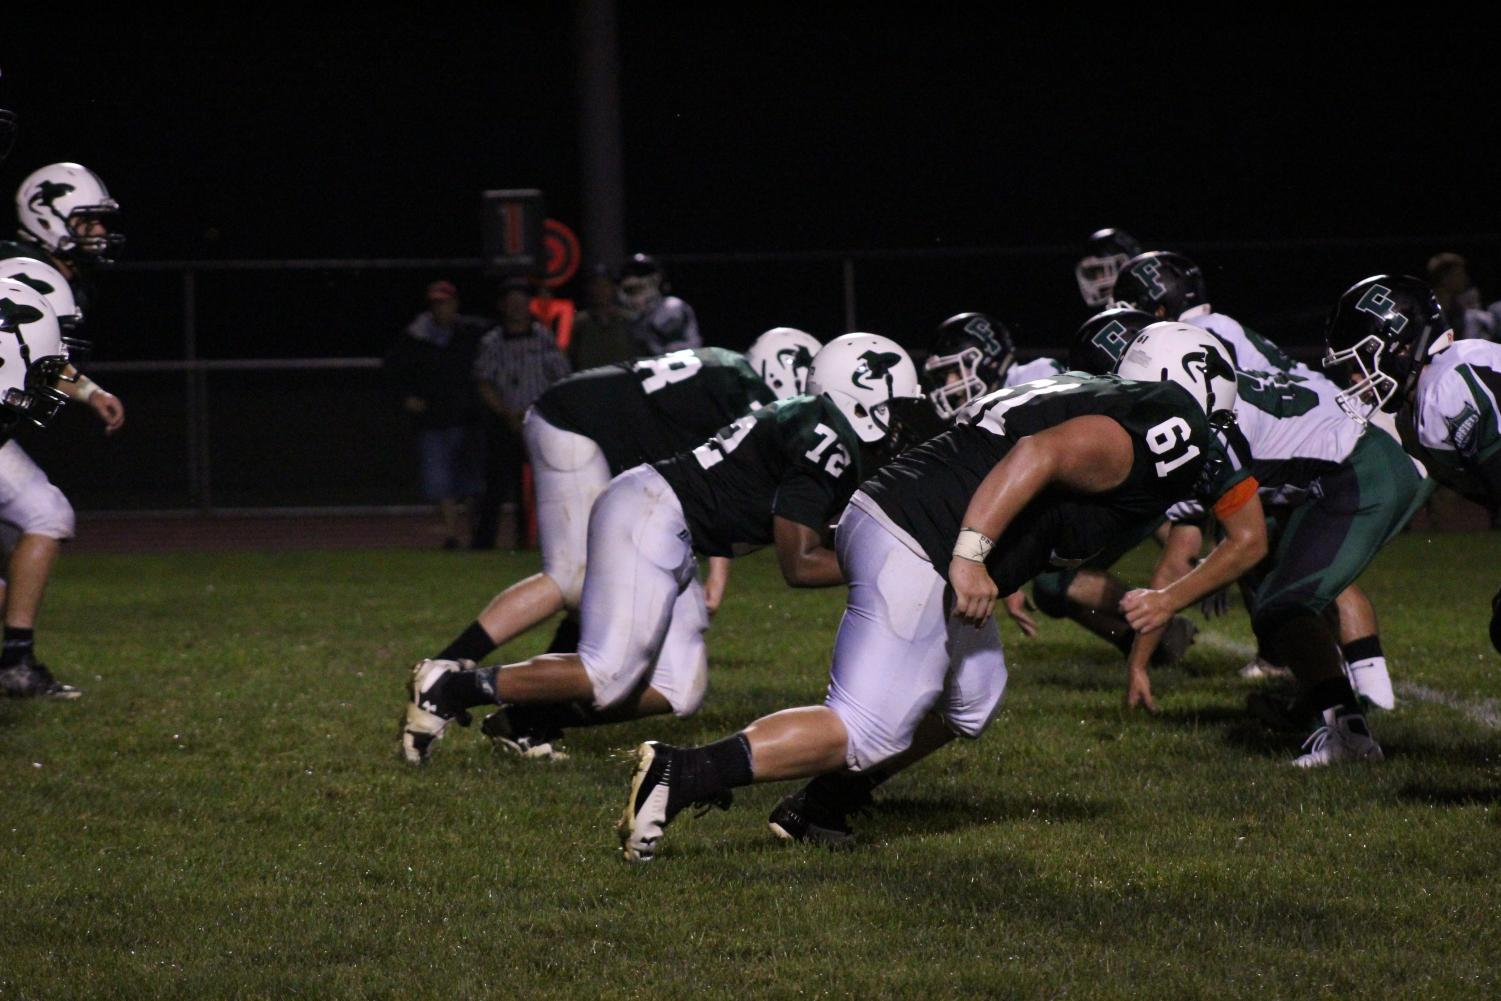 Logan Spoonhour (12) plays the defensive line for the Rocket football team.